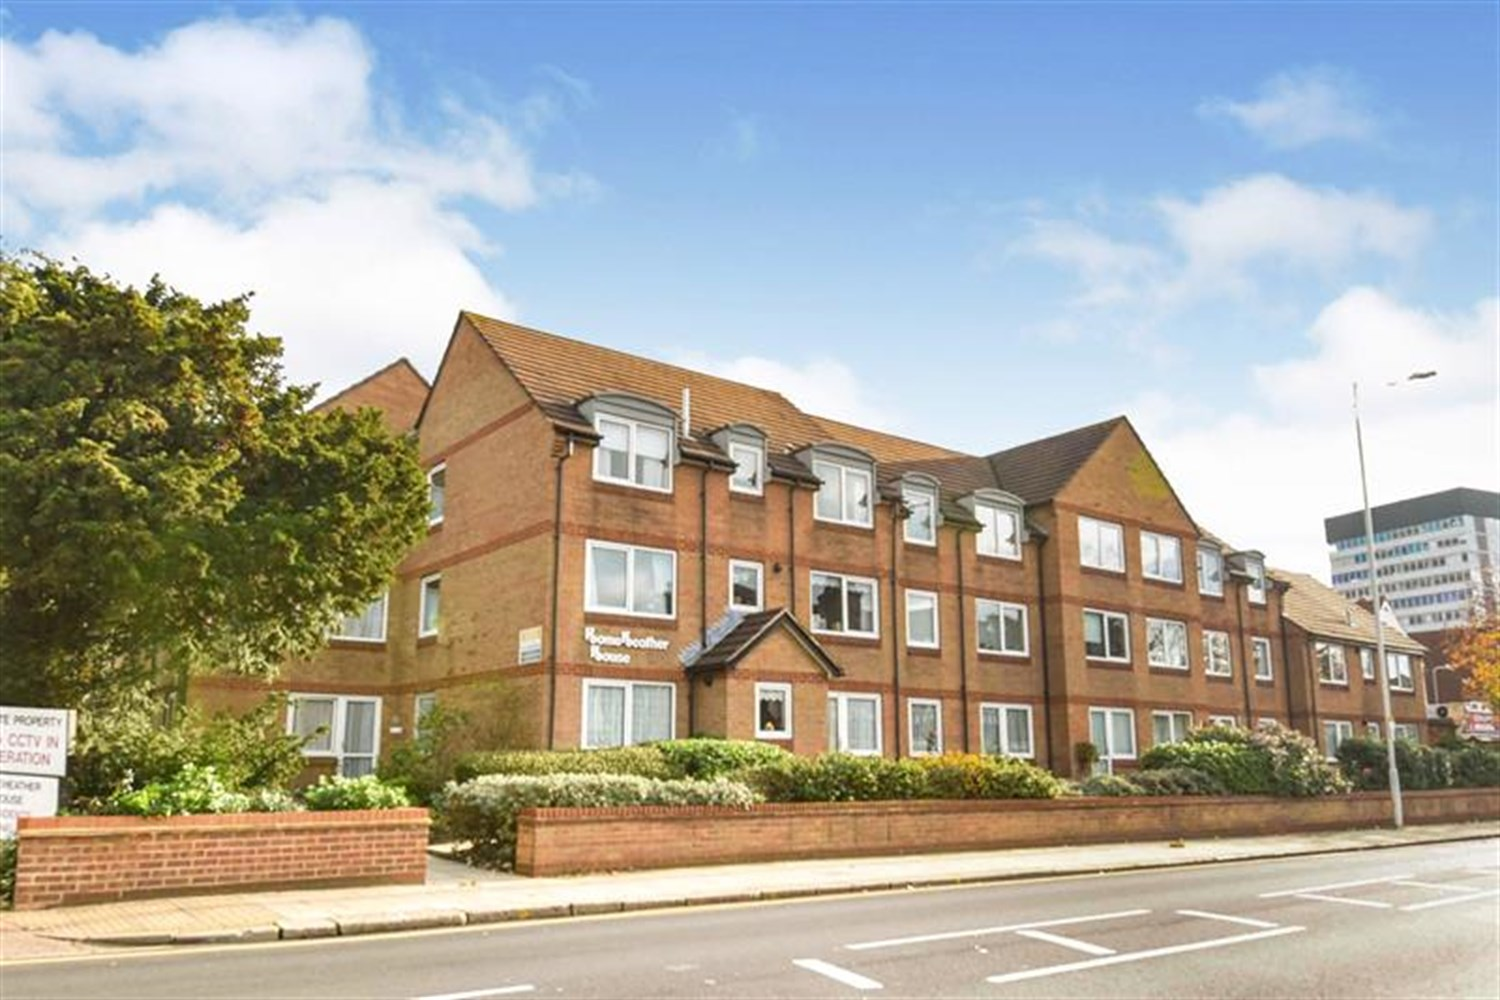 Ilford, Essex 1 bedroom to let